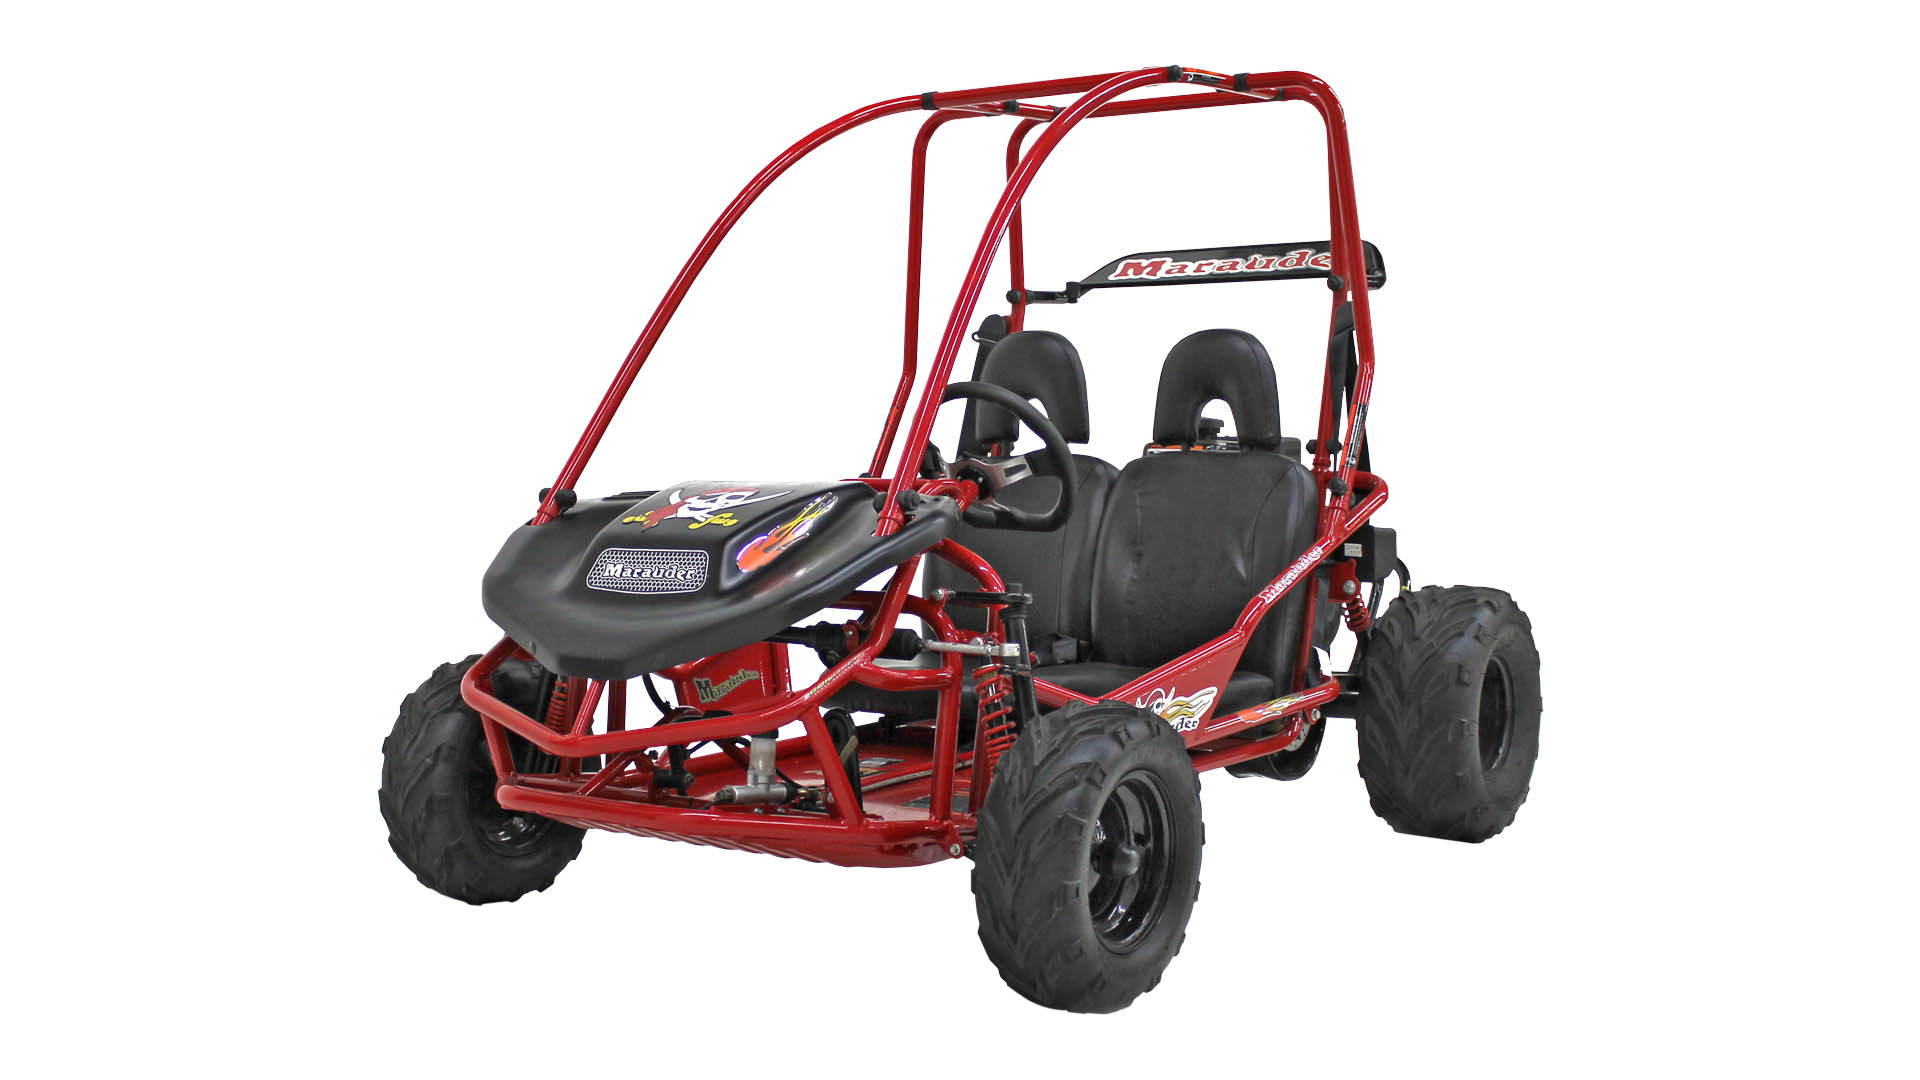 American Landmaster Marauder Off Road Go Kart for Kids